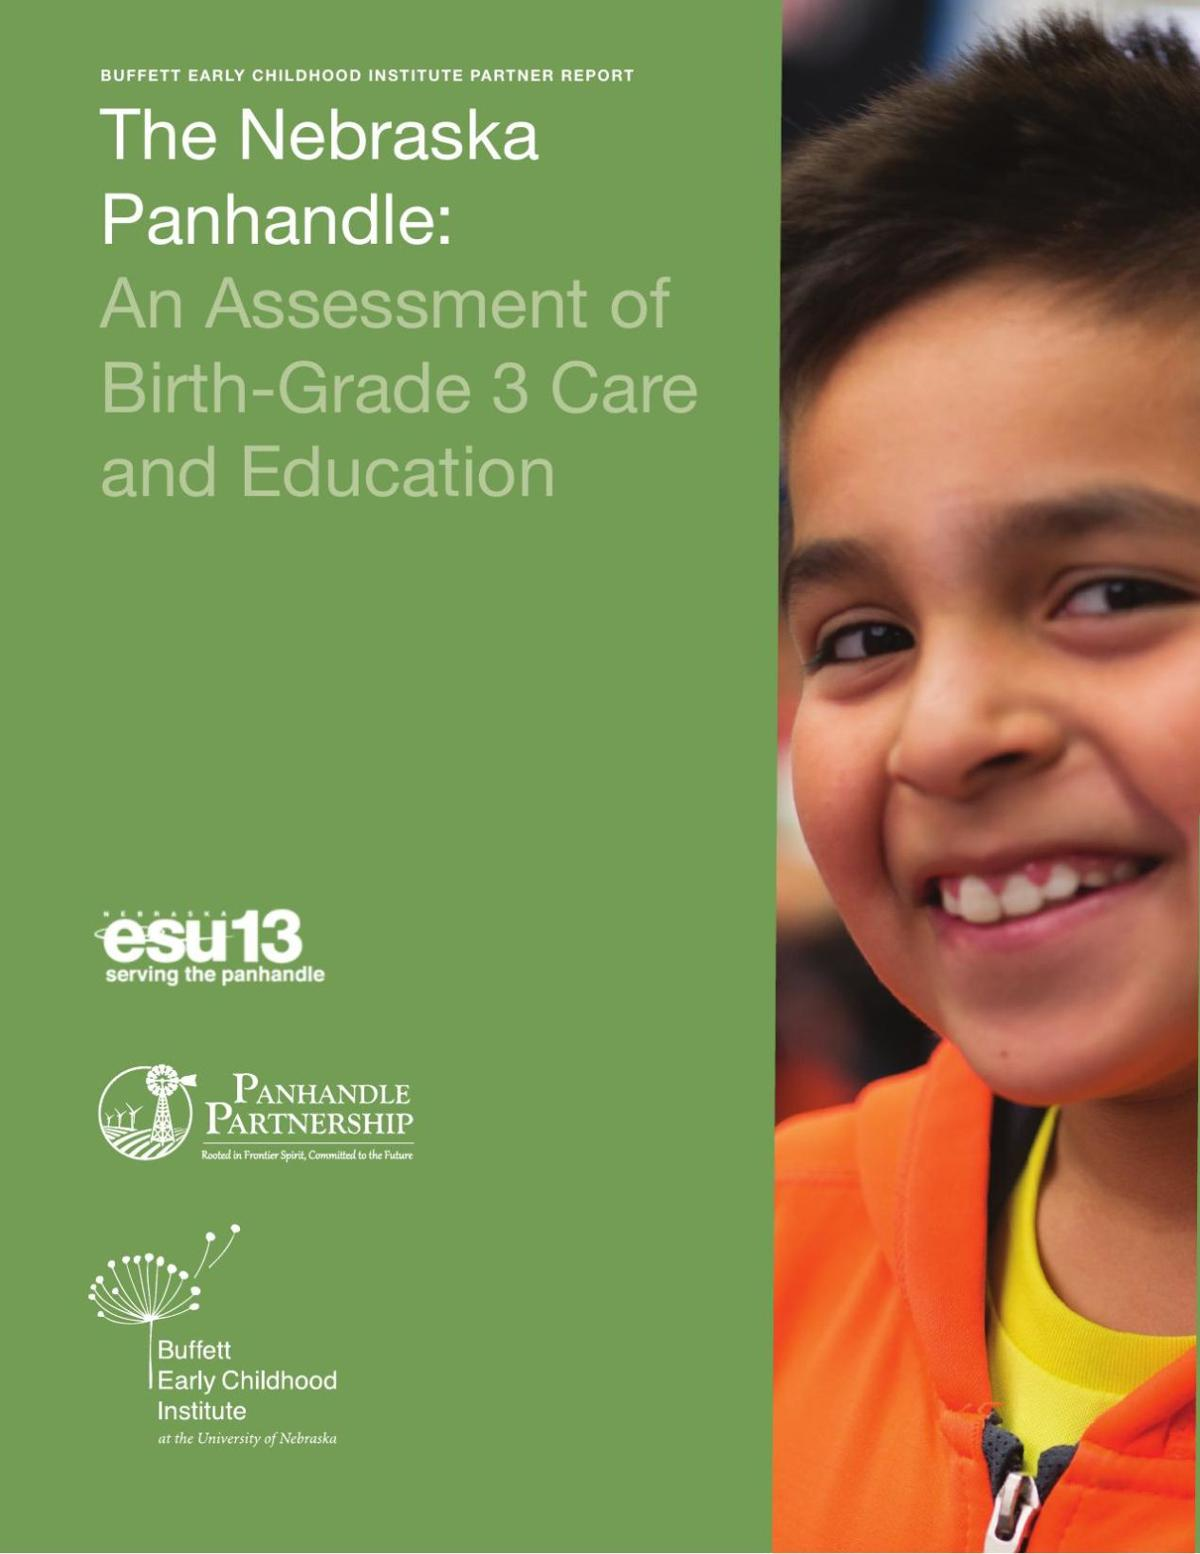 The Nebraska Panhandle: An Assessment of Birth-Grade 3 Care and Education